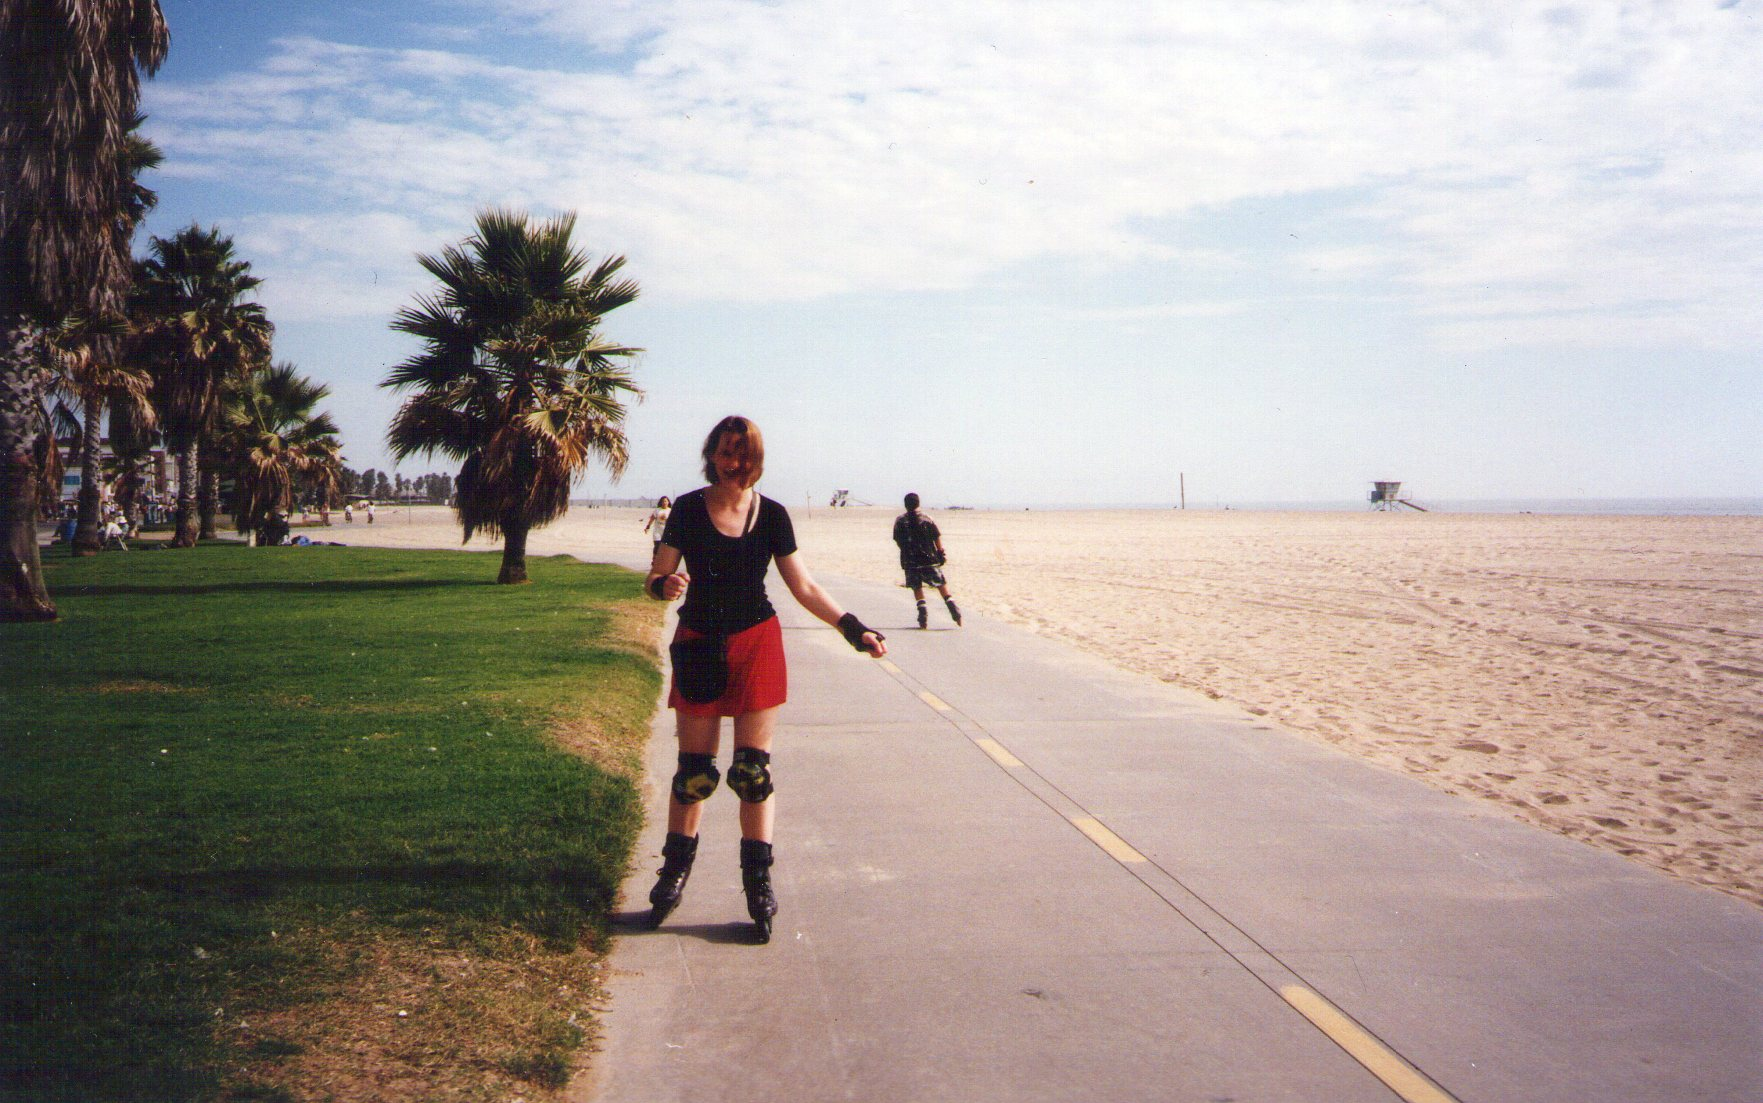 writer Ali Mercer rollerblading on Venice Beach California in the 90s